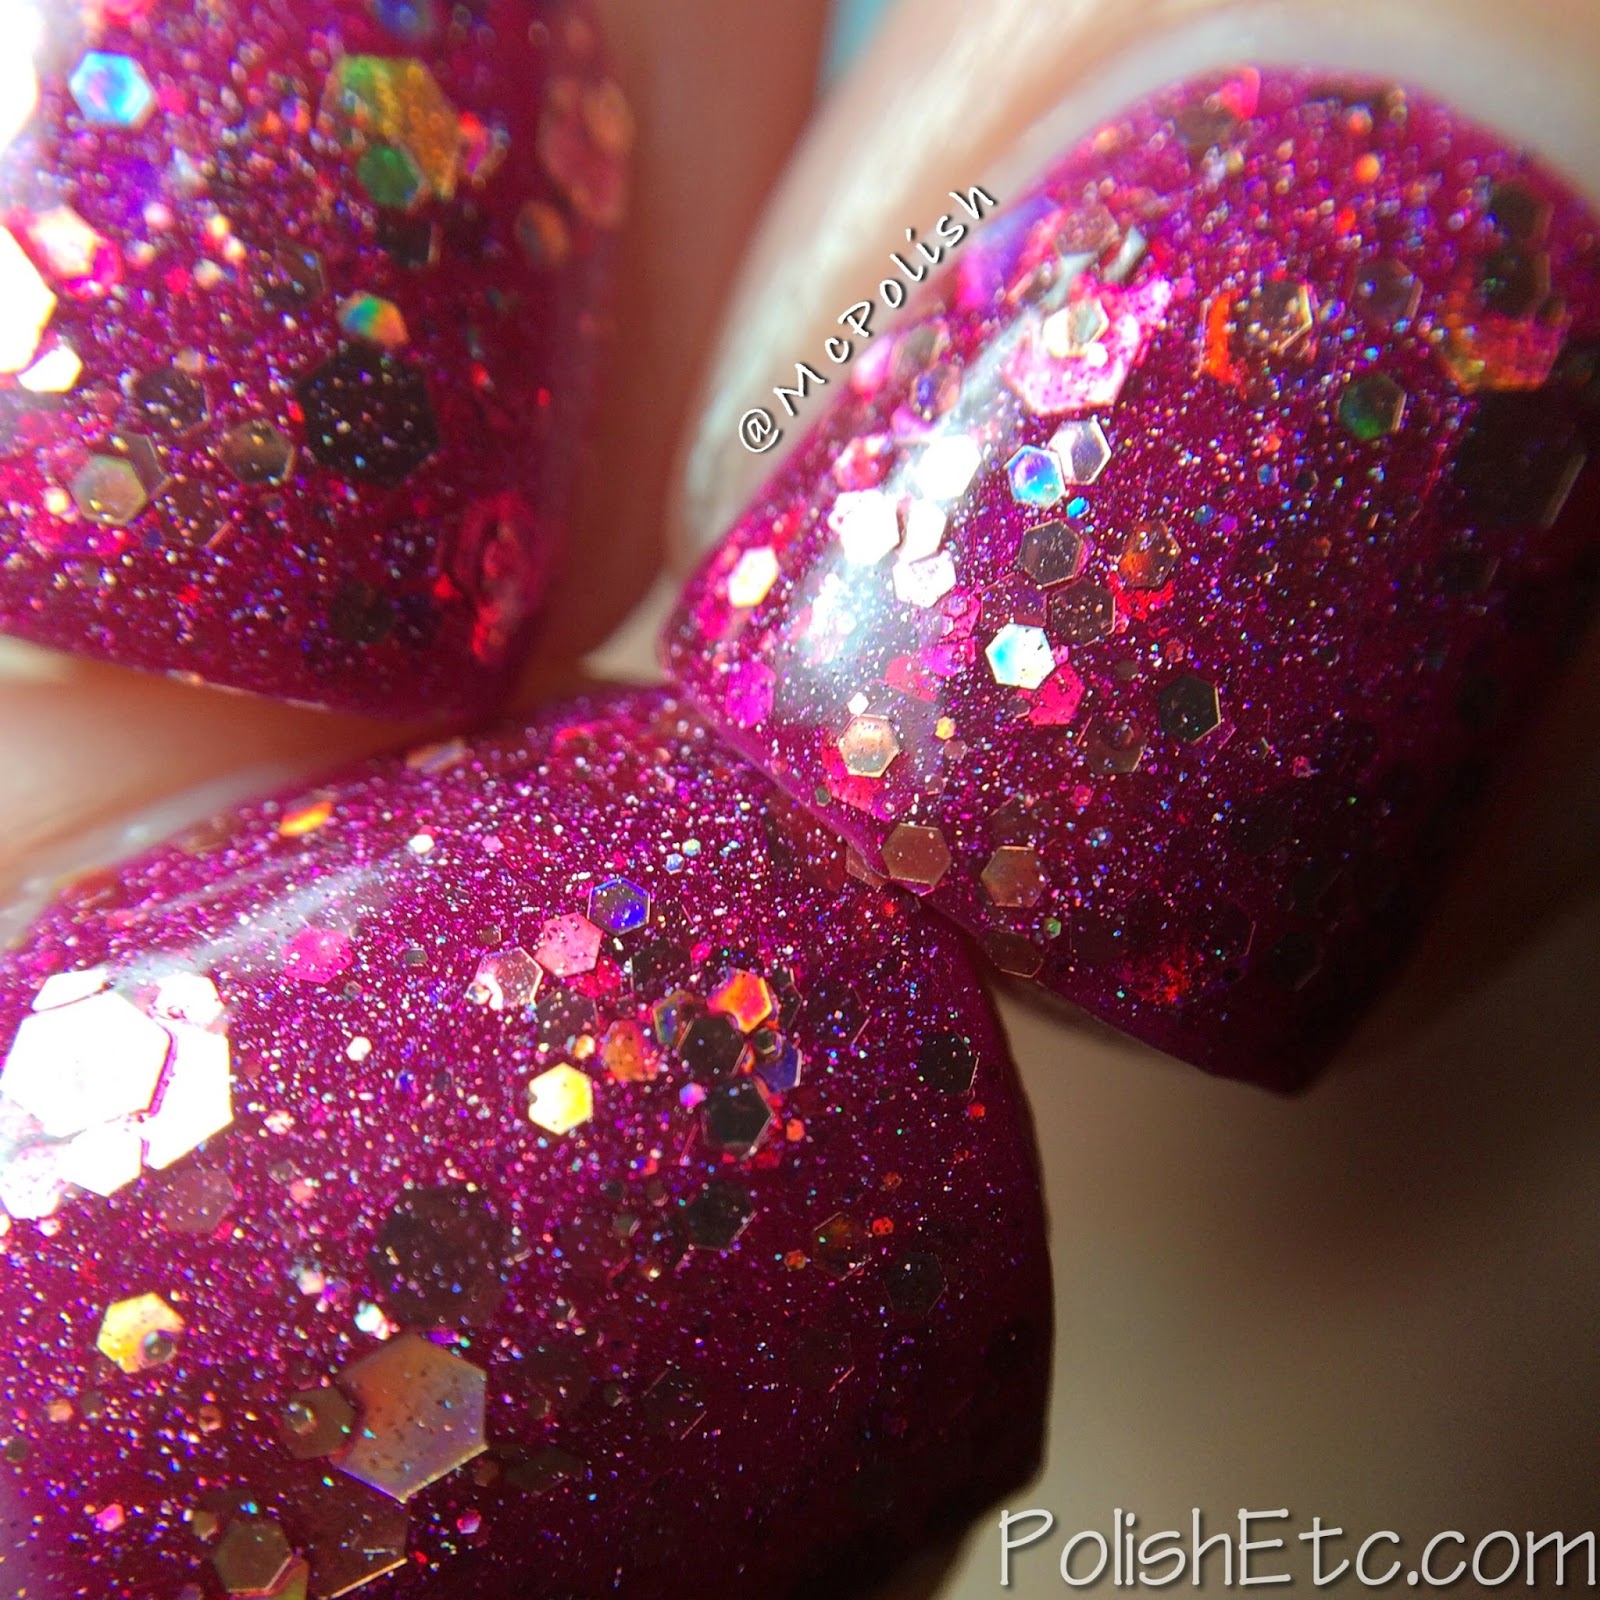 Nayll custom nail polishes - McPolish - Dawn - MACRO